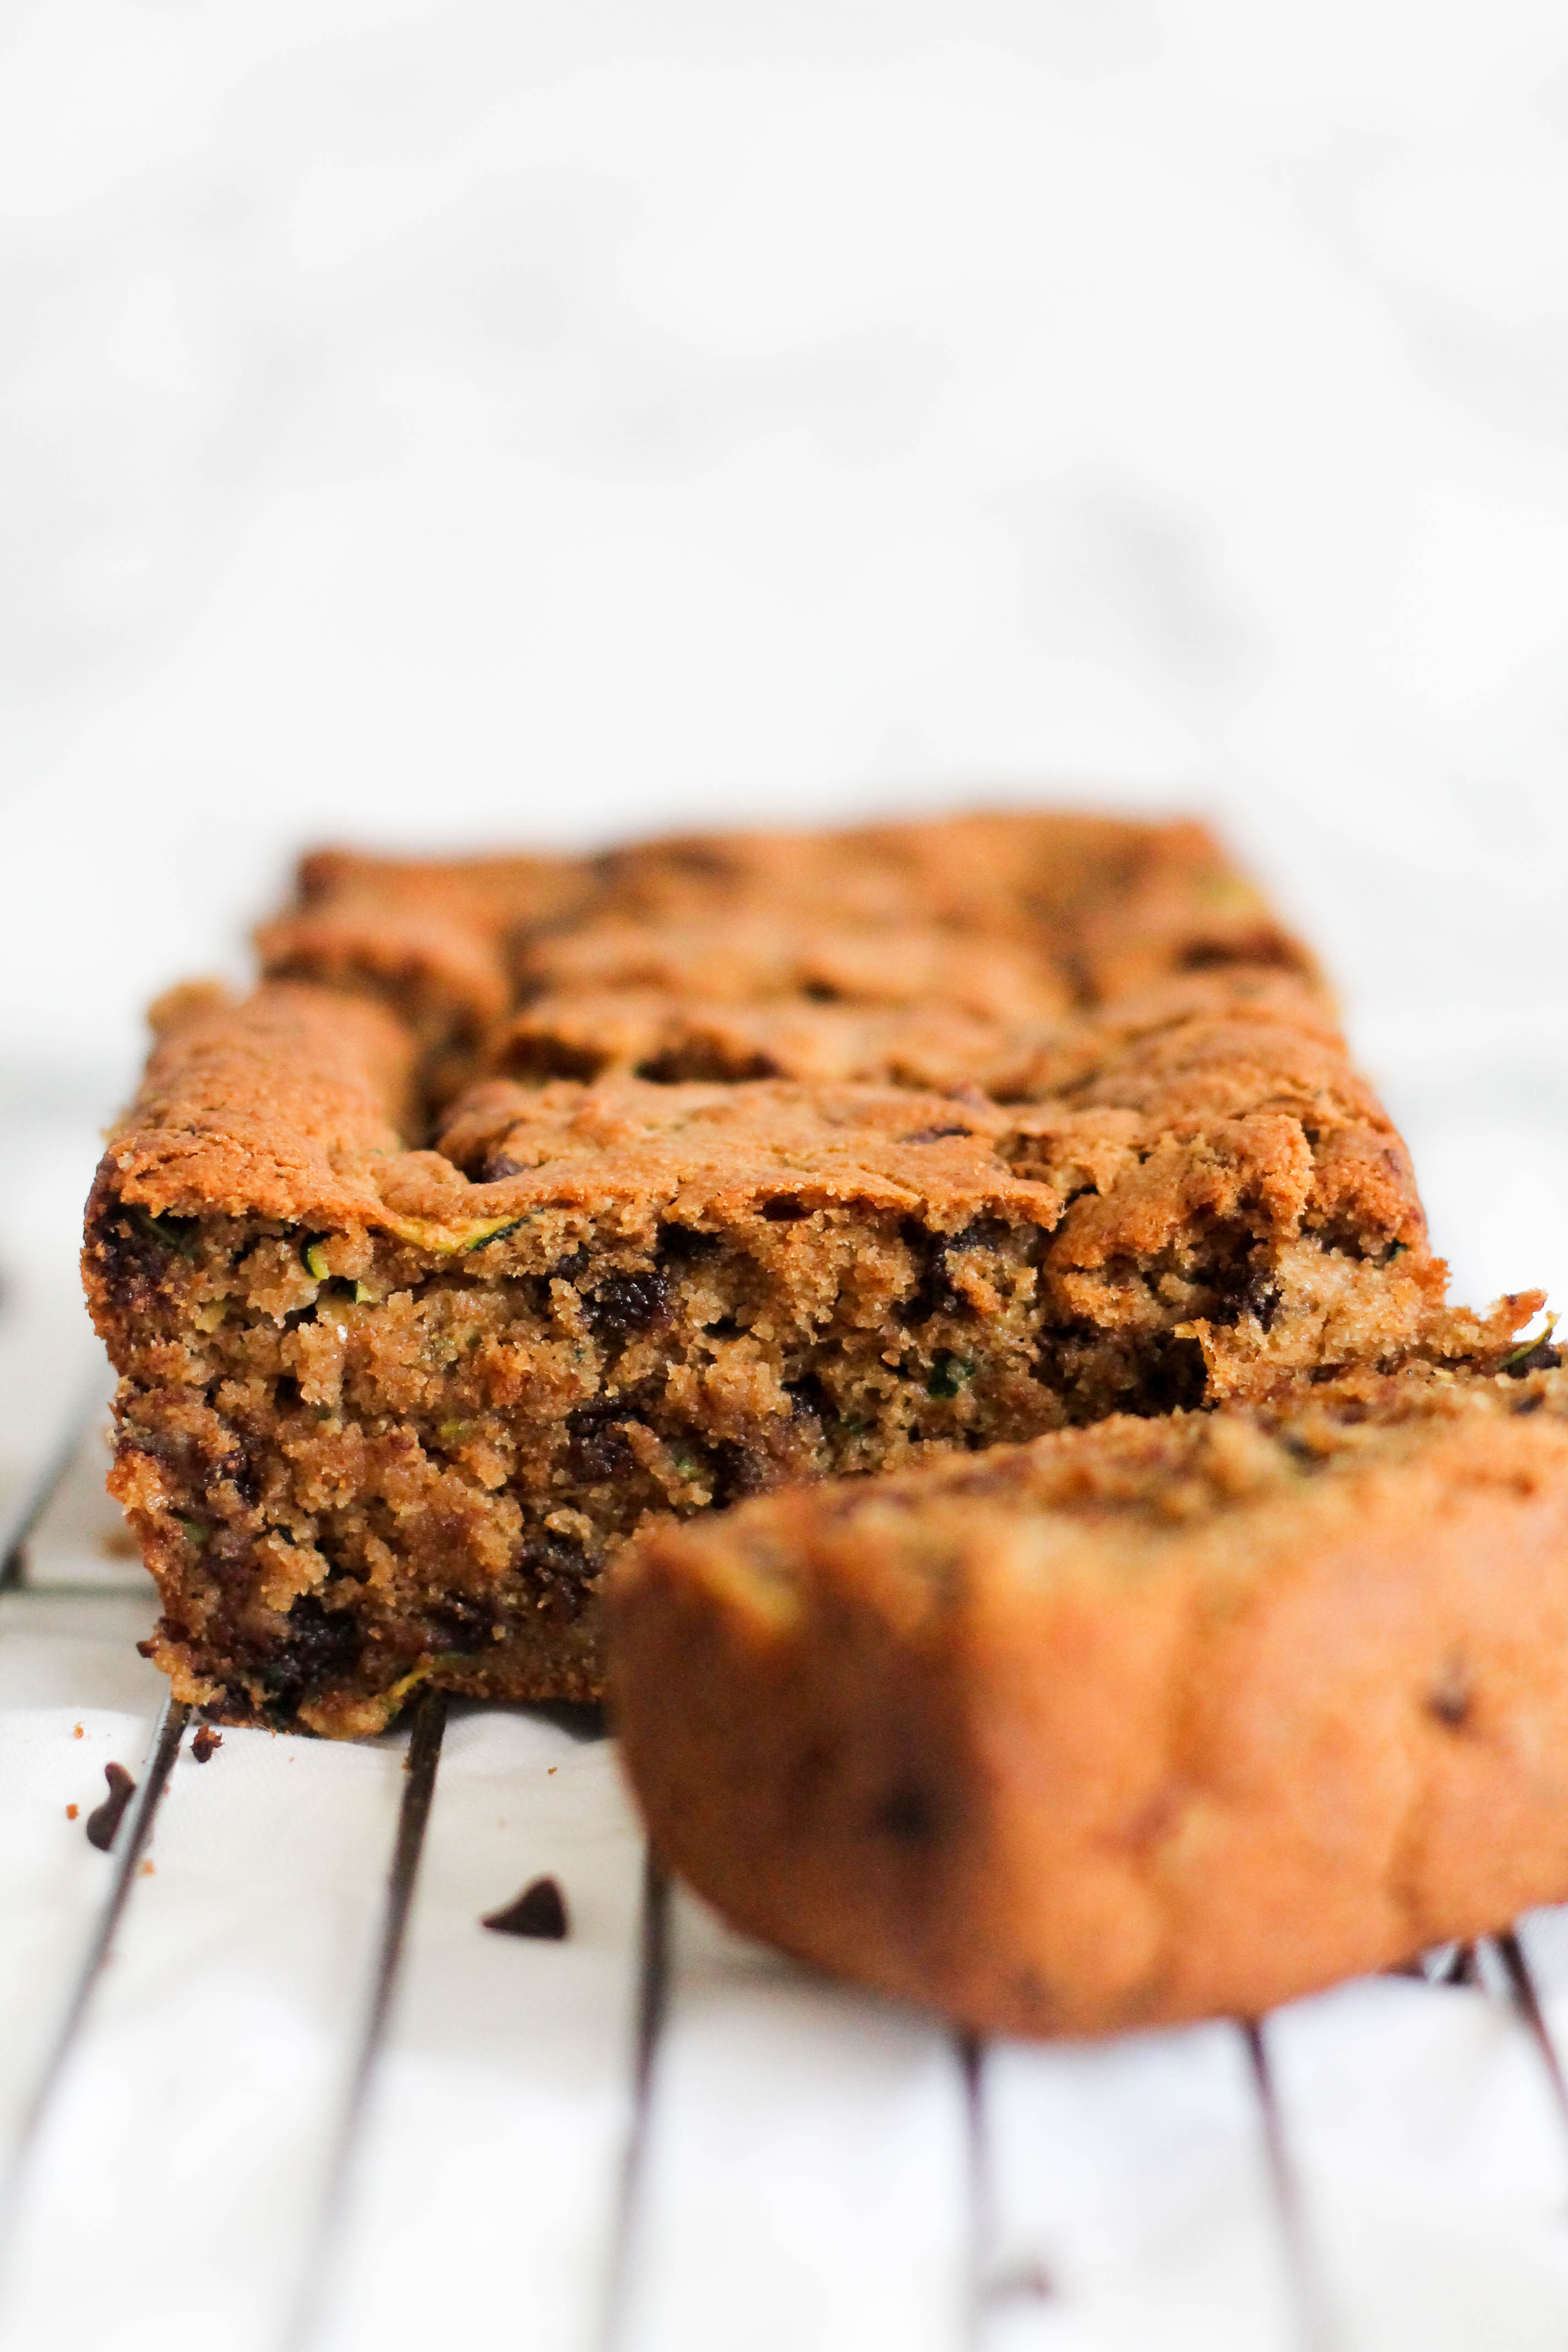 This chocolate chip zucchini bread is vegan, gluten free, refined sugar free, and absolutely delicious. It's filled with chocolate, flavor, and makes for the perfect dessert or snack!